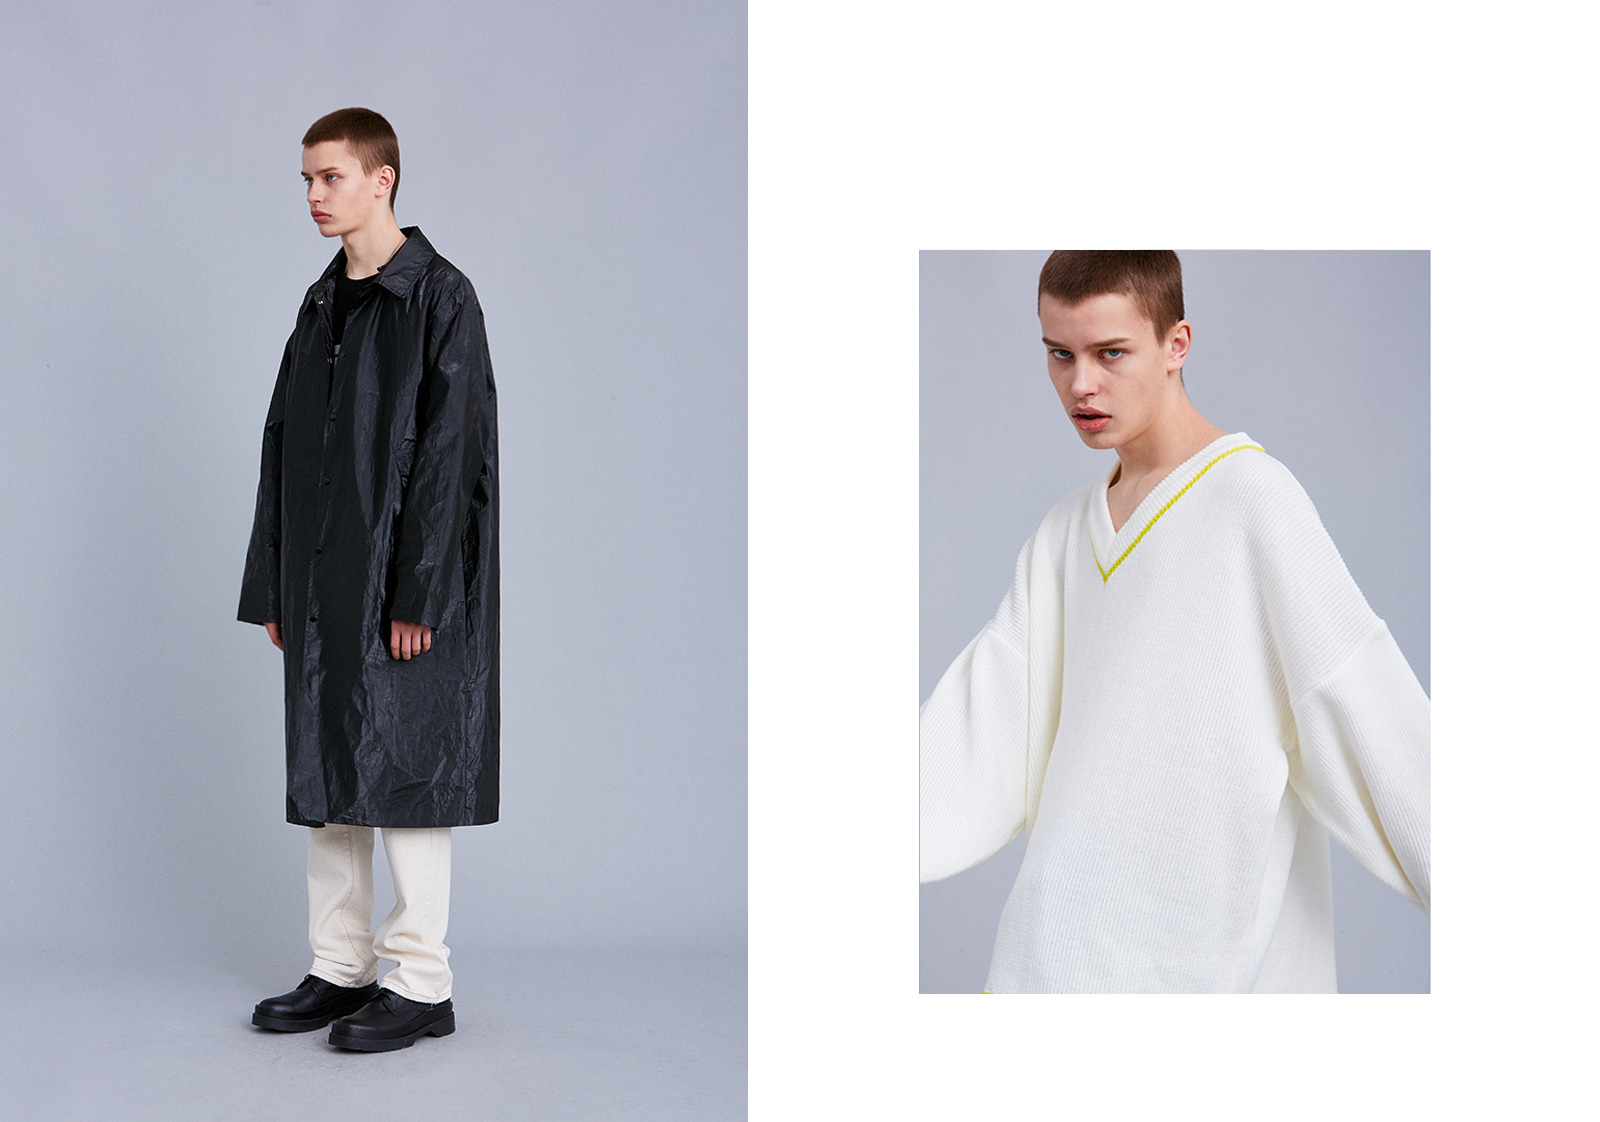 2019 S/S COLLECTION LOOKBOOK